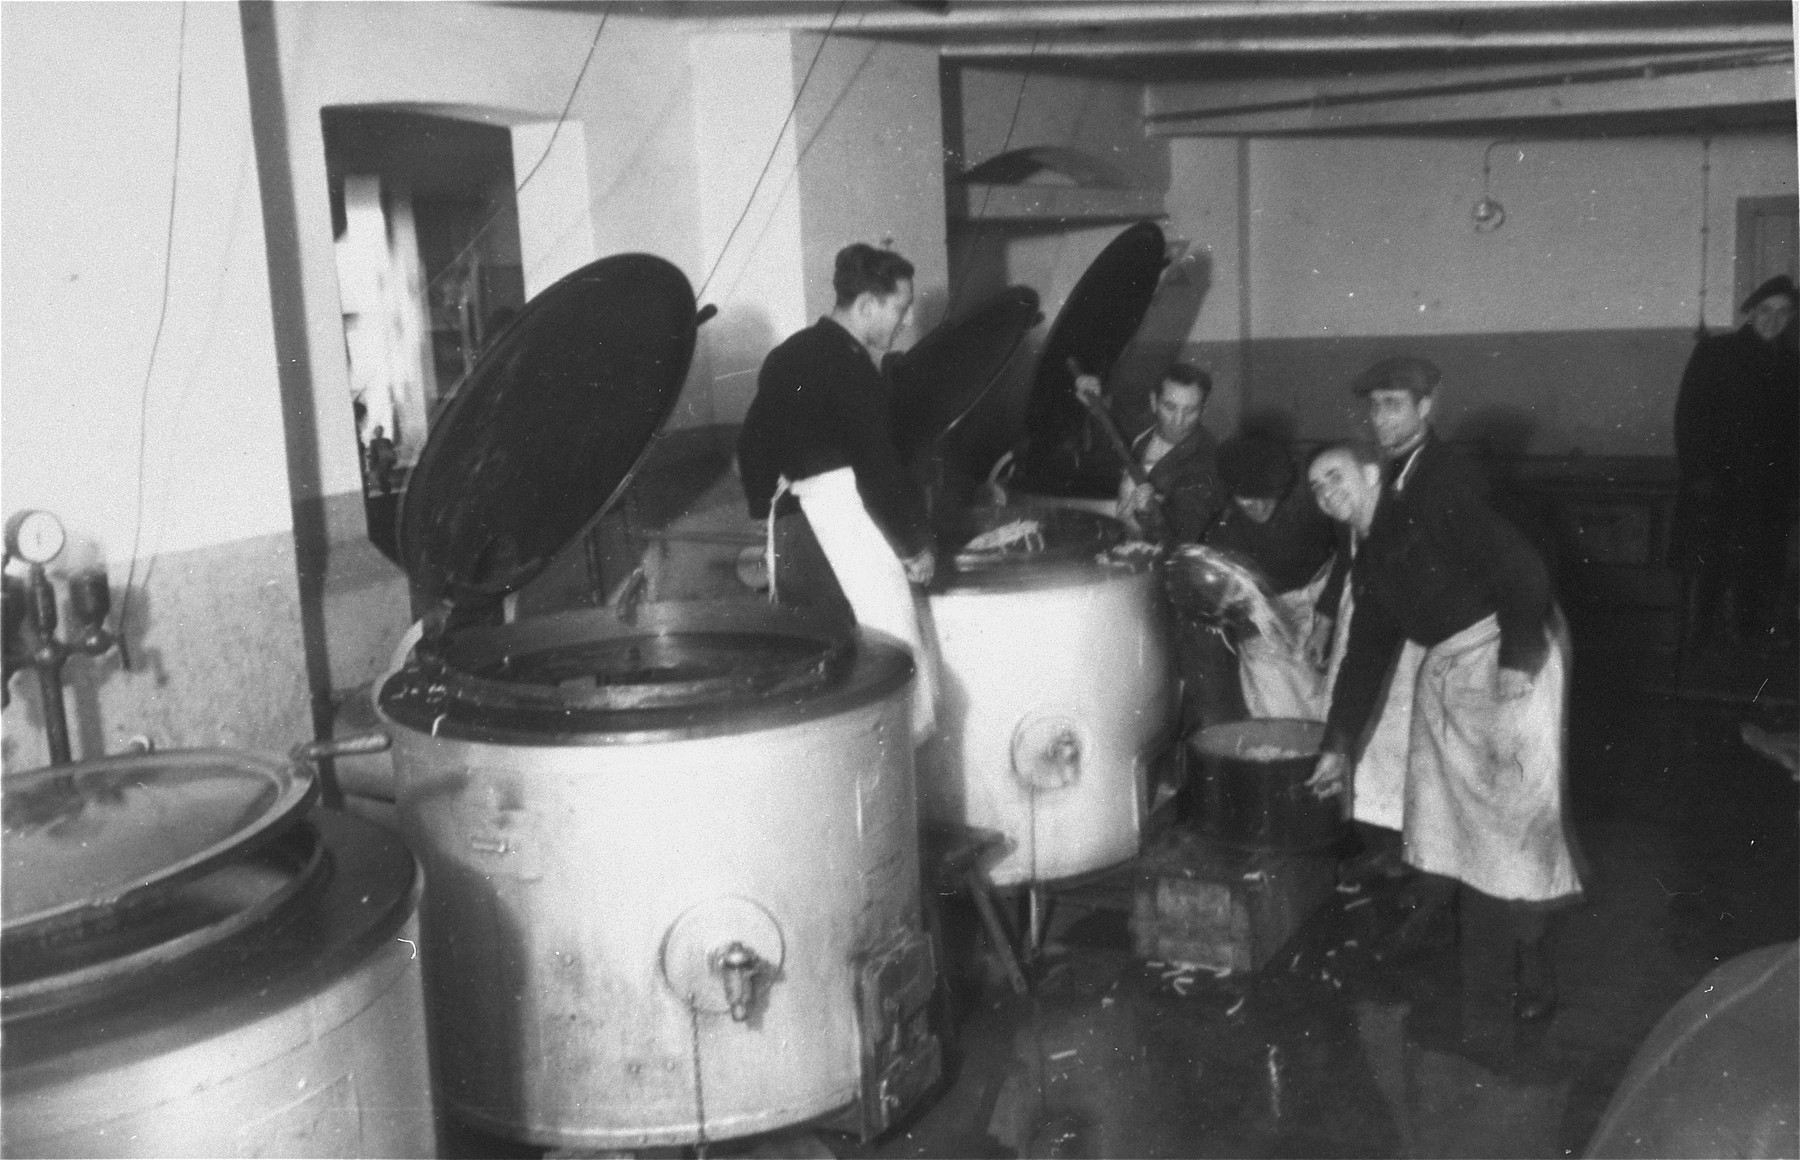 Work in the Zeilsheim camp kitchen pour food from large vats.